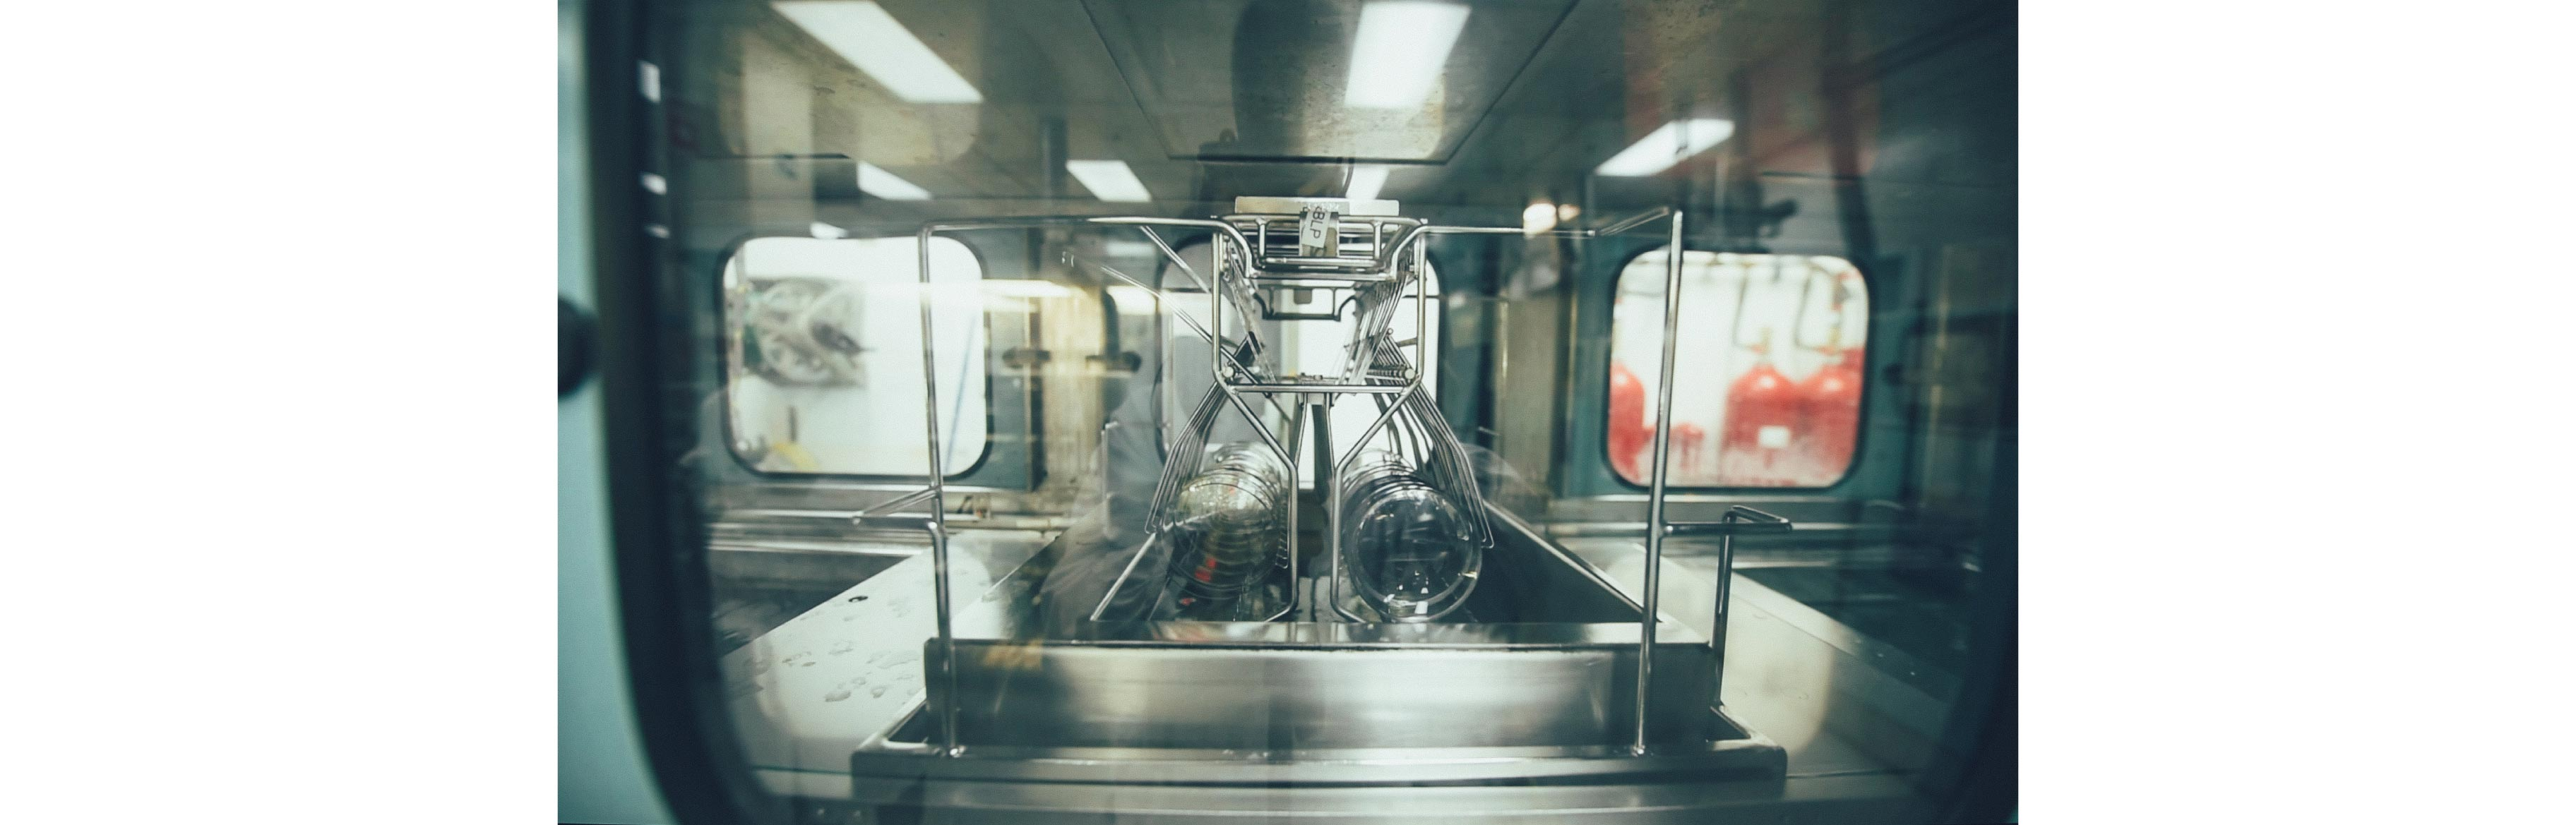 round Nikon lenses are in a machine and being soaked in a chemical solution to coat them according to the patient's needs